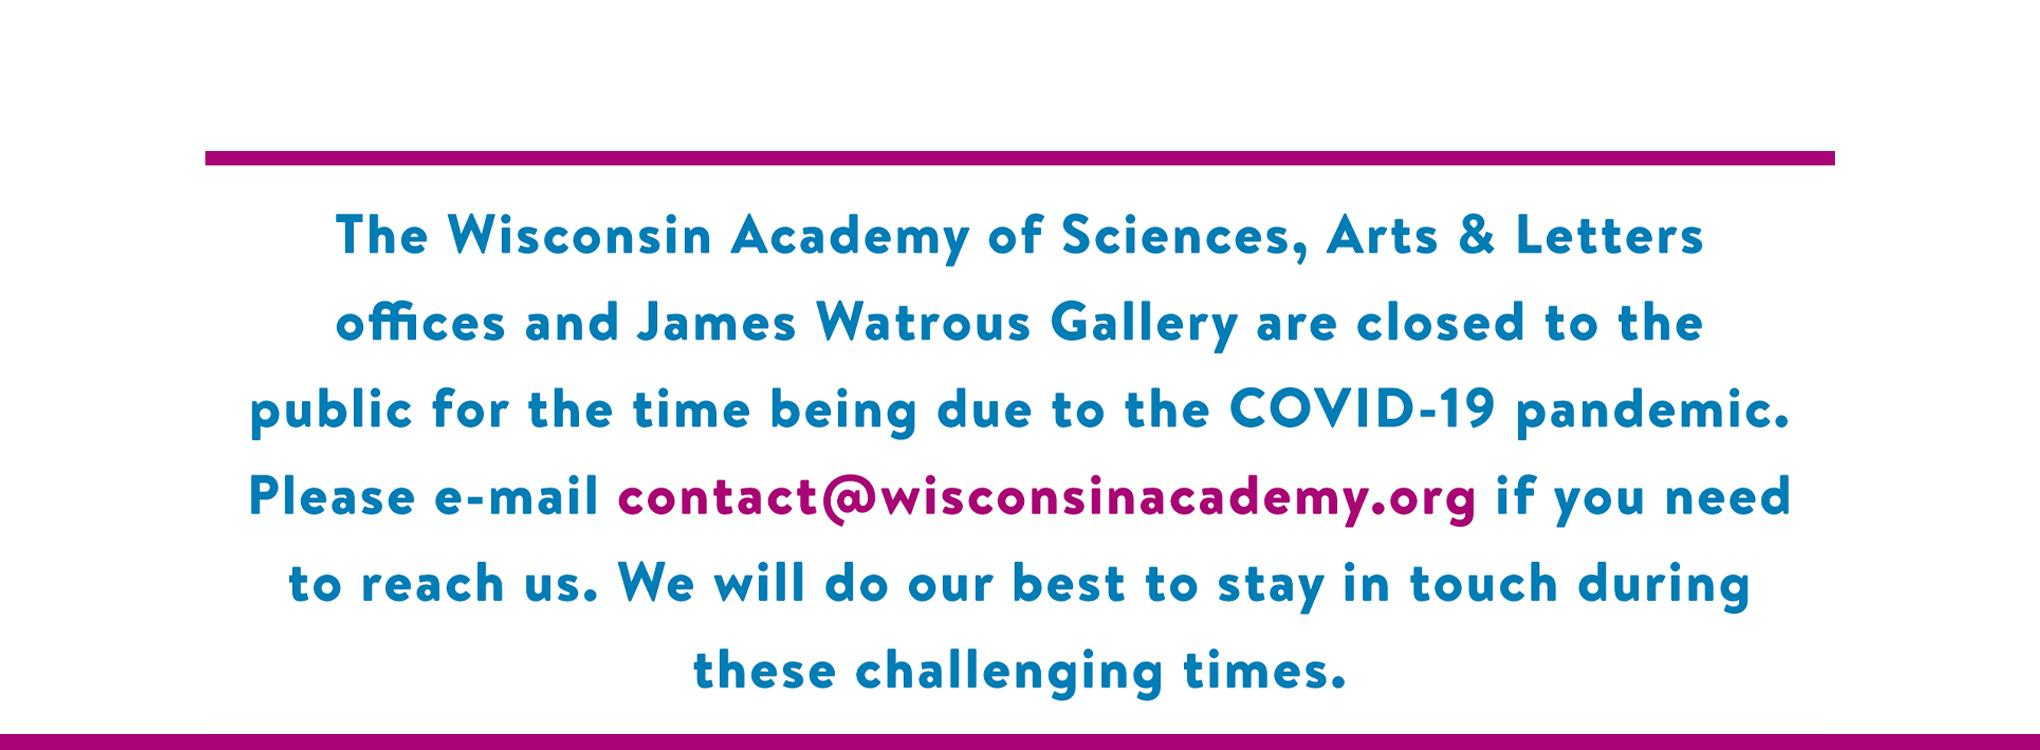 Academy closure notification. Please e-mail contact@wisconsinacademy.org